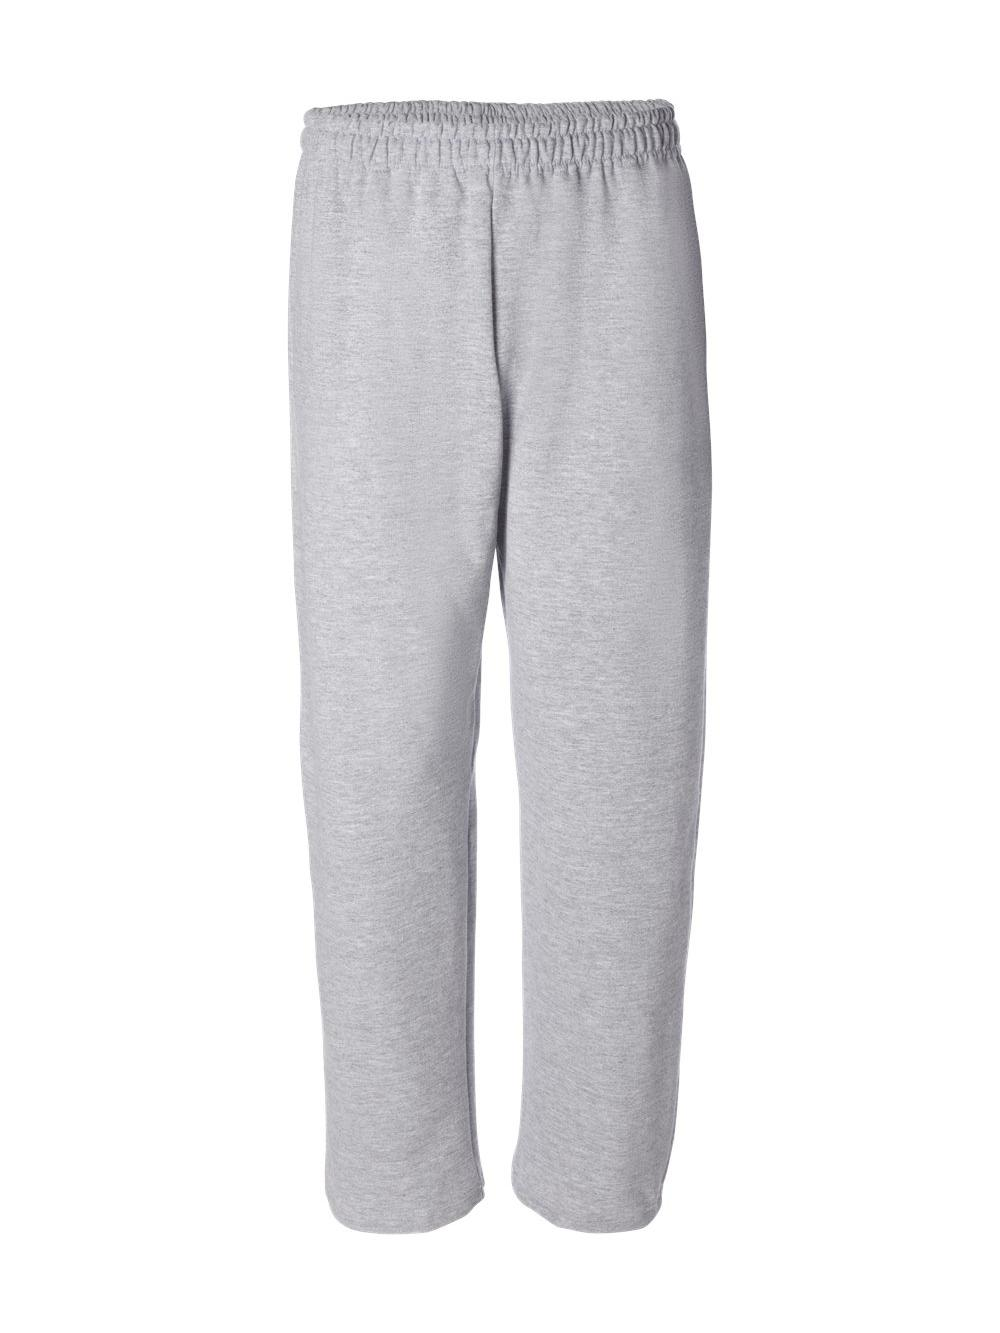 Gildan-Heavy-Blend-Open-Bottom-Sweatpants-18400 thumbnail 27